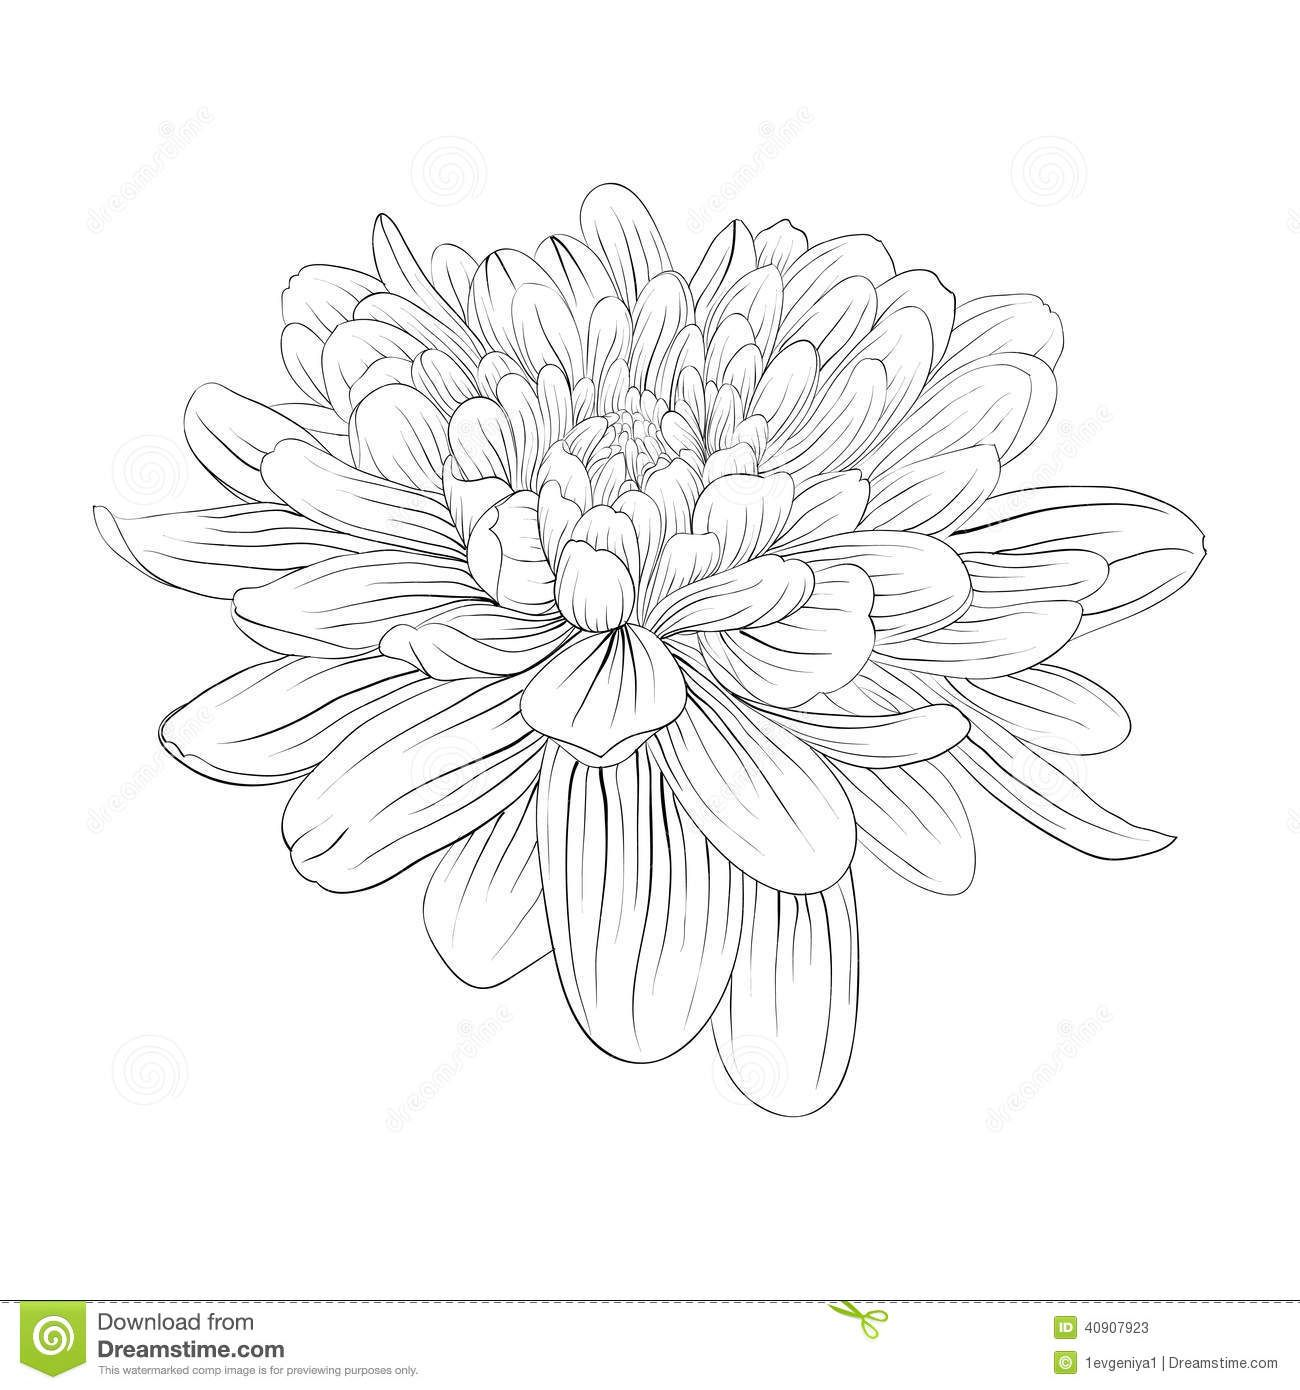 Dahlia Outline Google Search Dahlia Flower Tattoos Flower Coloring Pages Coloring Pages